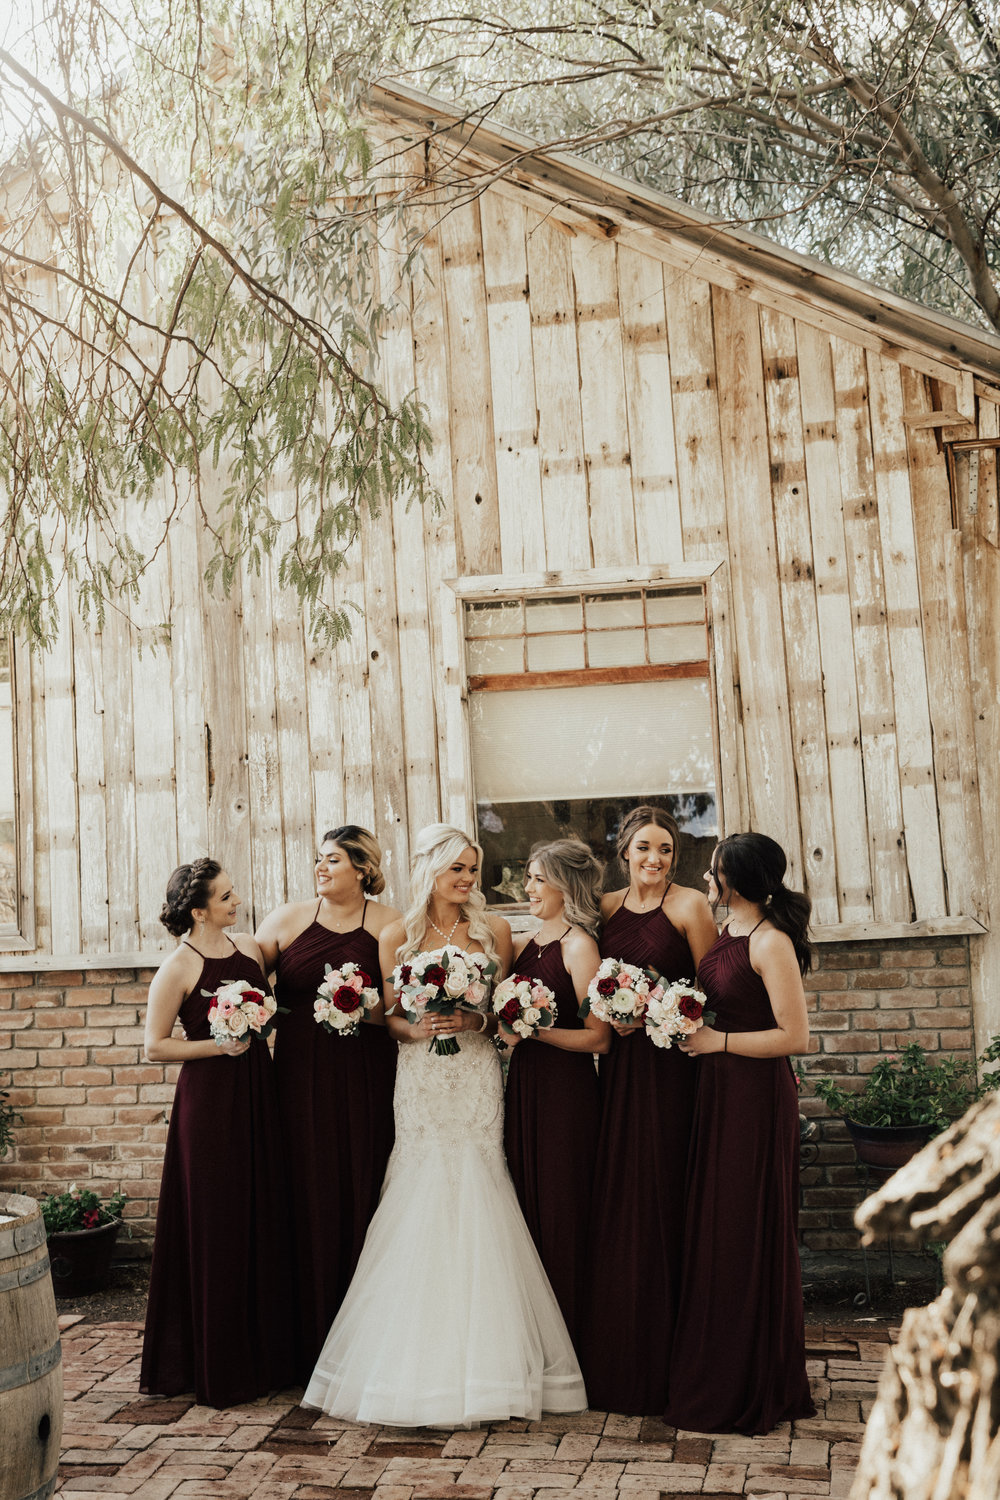 The bride, and bridesmaids.